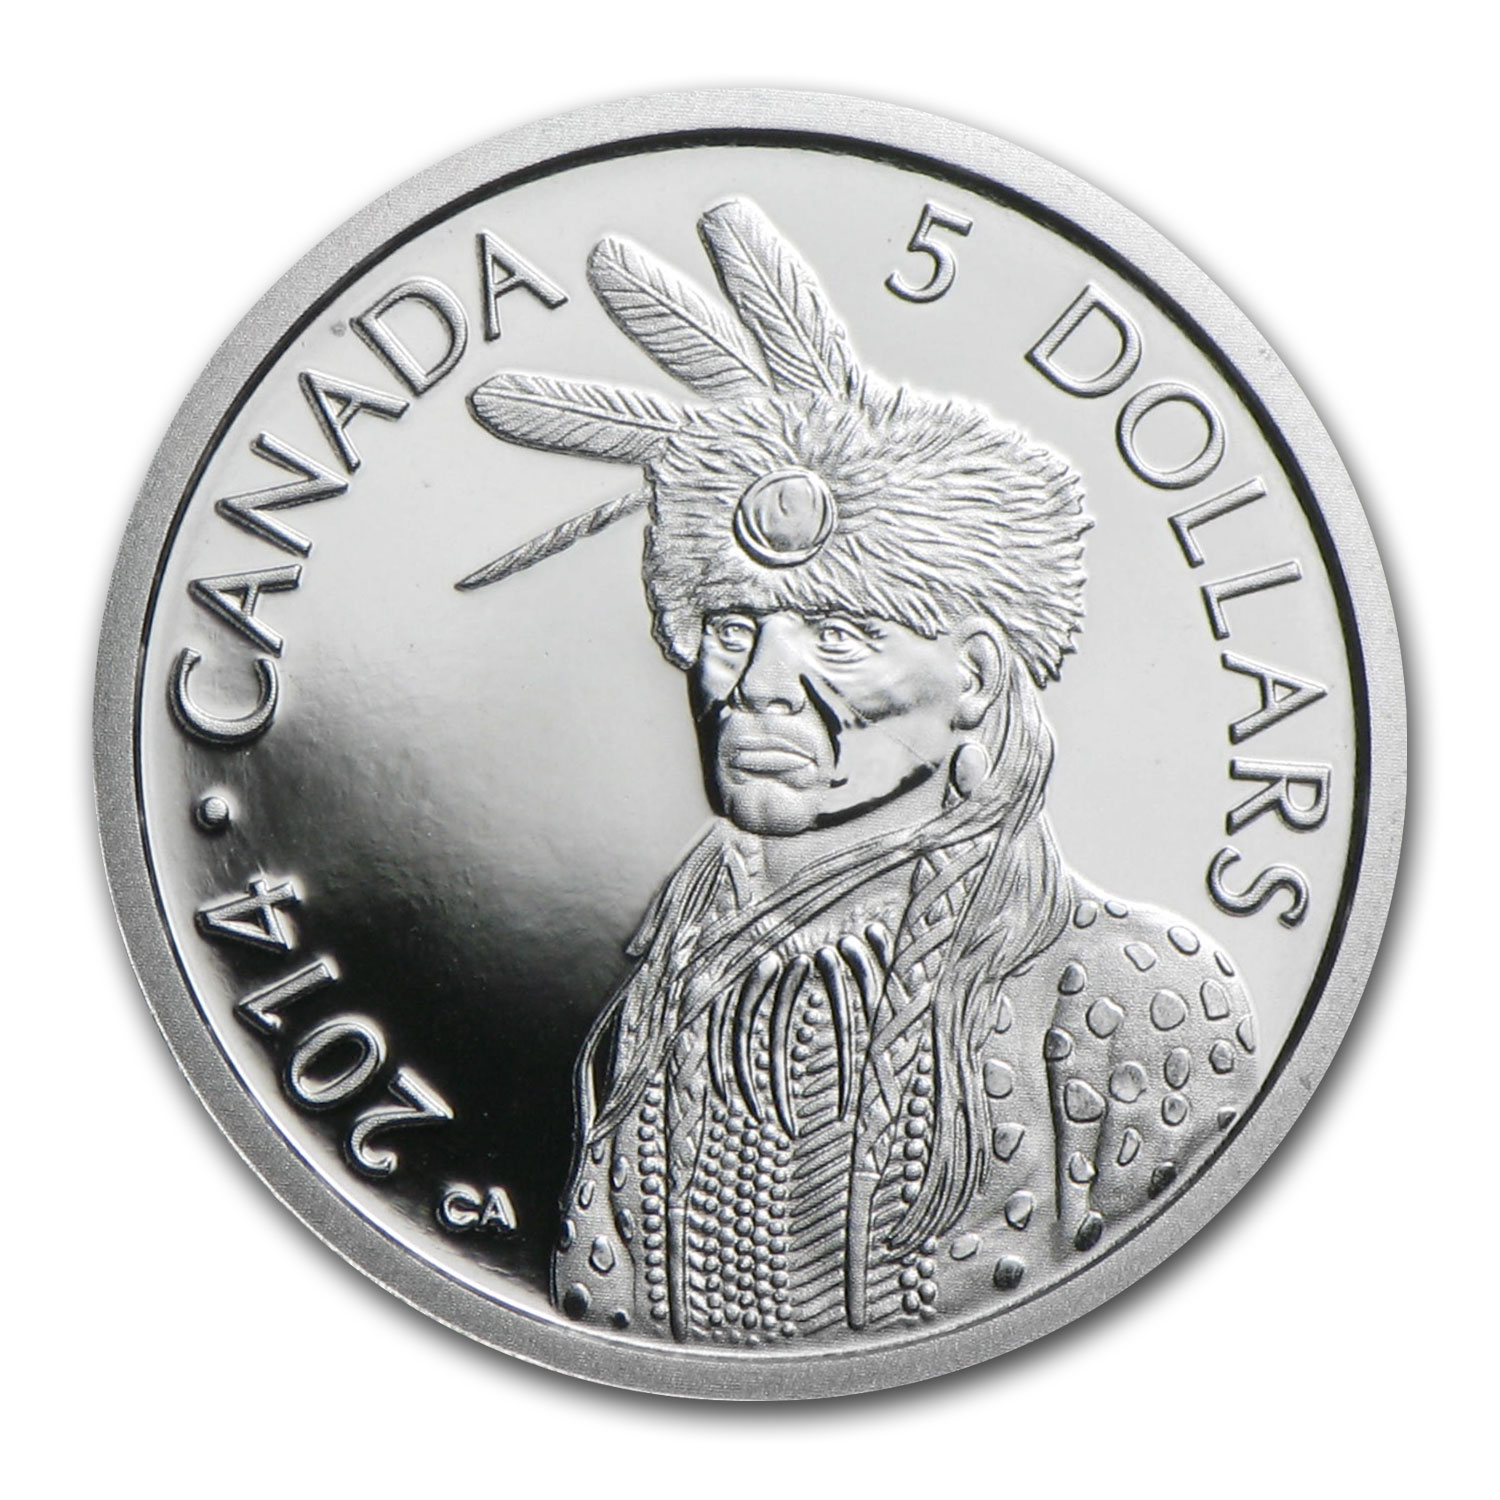 2014 1/10 oz Platinum Canadian $5 - Portrait of Nanaboozhoo